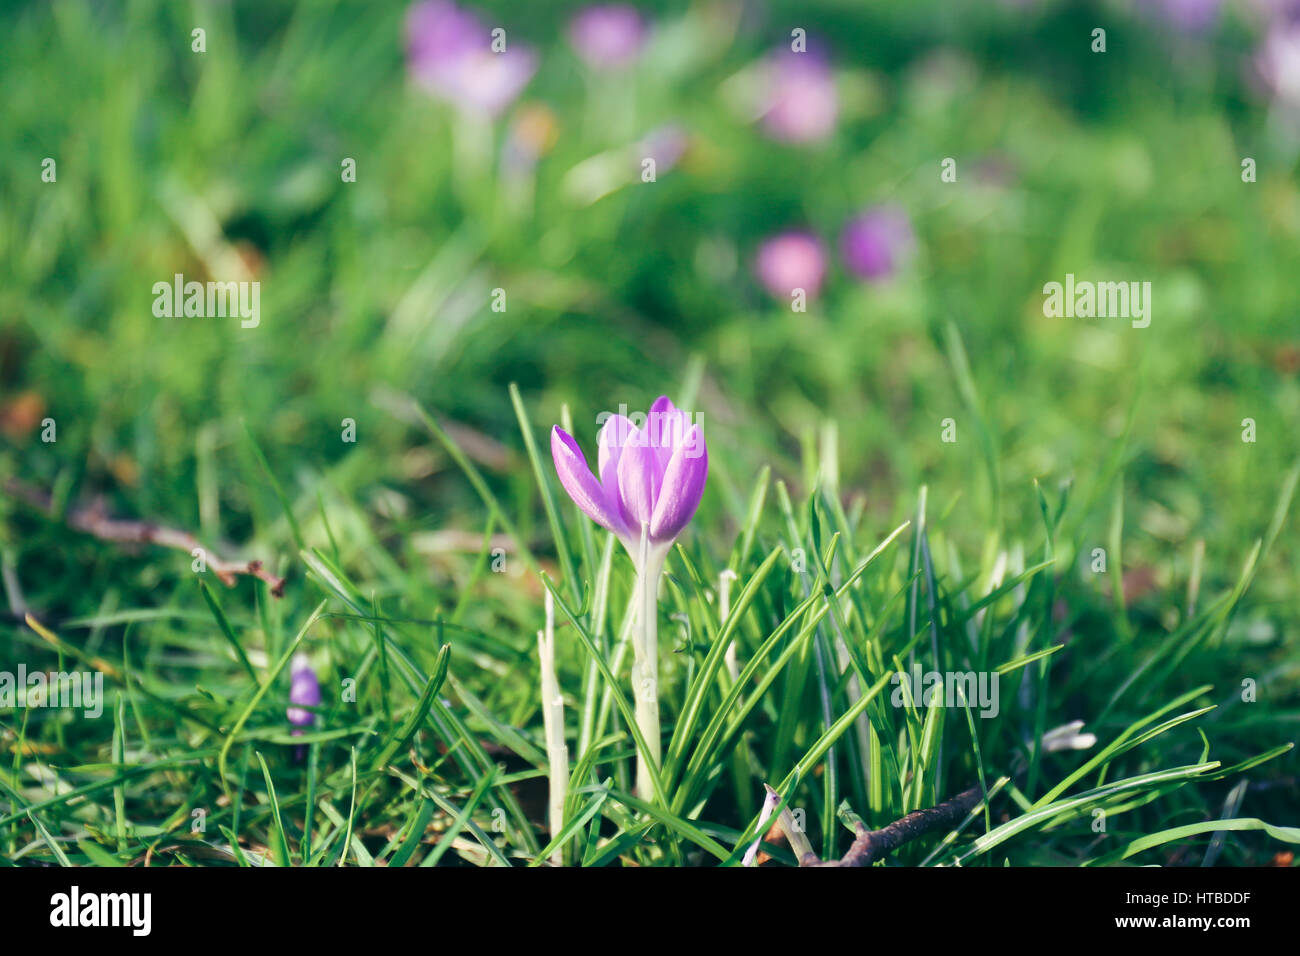 Green Grass And One Of The First Spring Flowers Crocus In A Garden